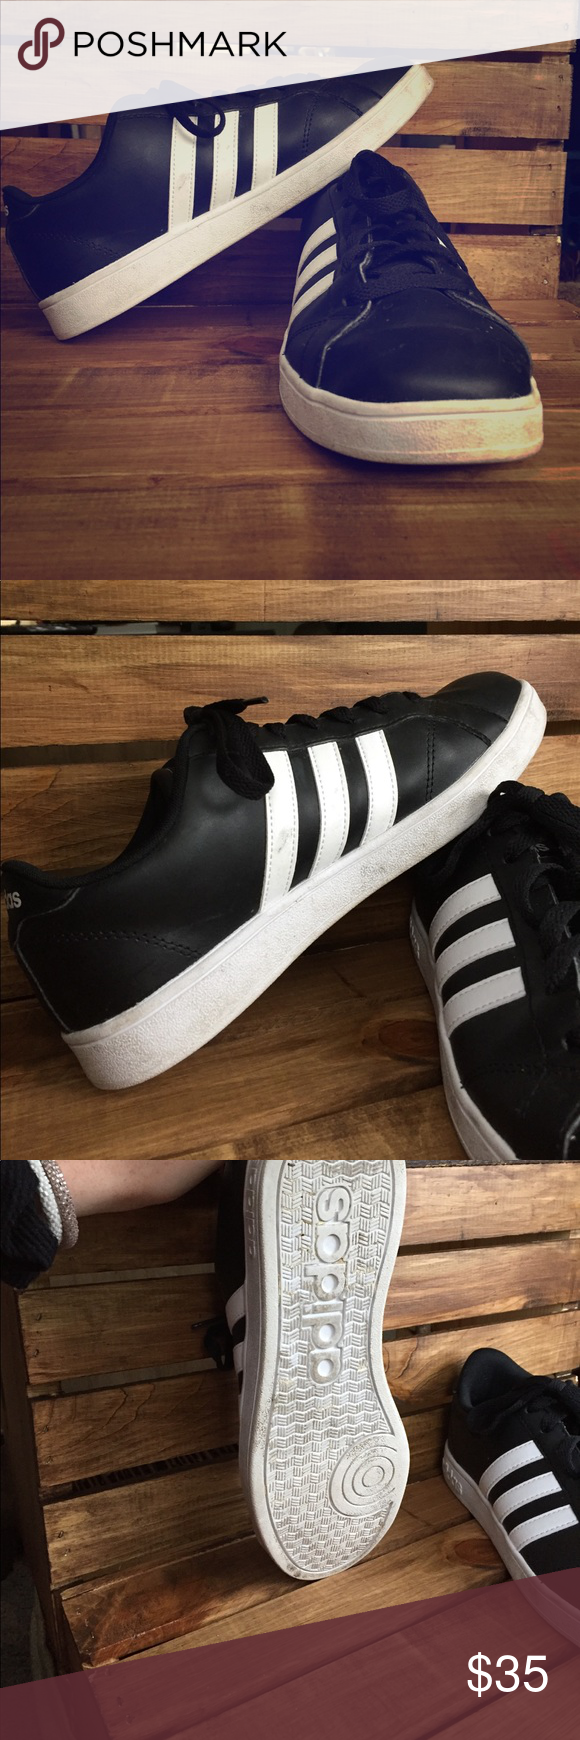 Adidas NEO Cloudfoam Advantage Stripe Adidas Neo stripes• black and white• low collar• classic adidas stripes• extremely comfortable• black leather• rubber outsole• round toe• lace-up• size 8 1/2• no damage• worn several times• adidas Shoes Sneakers